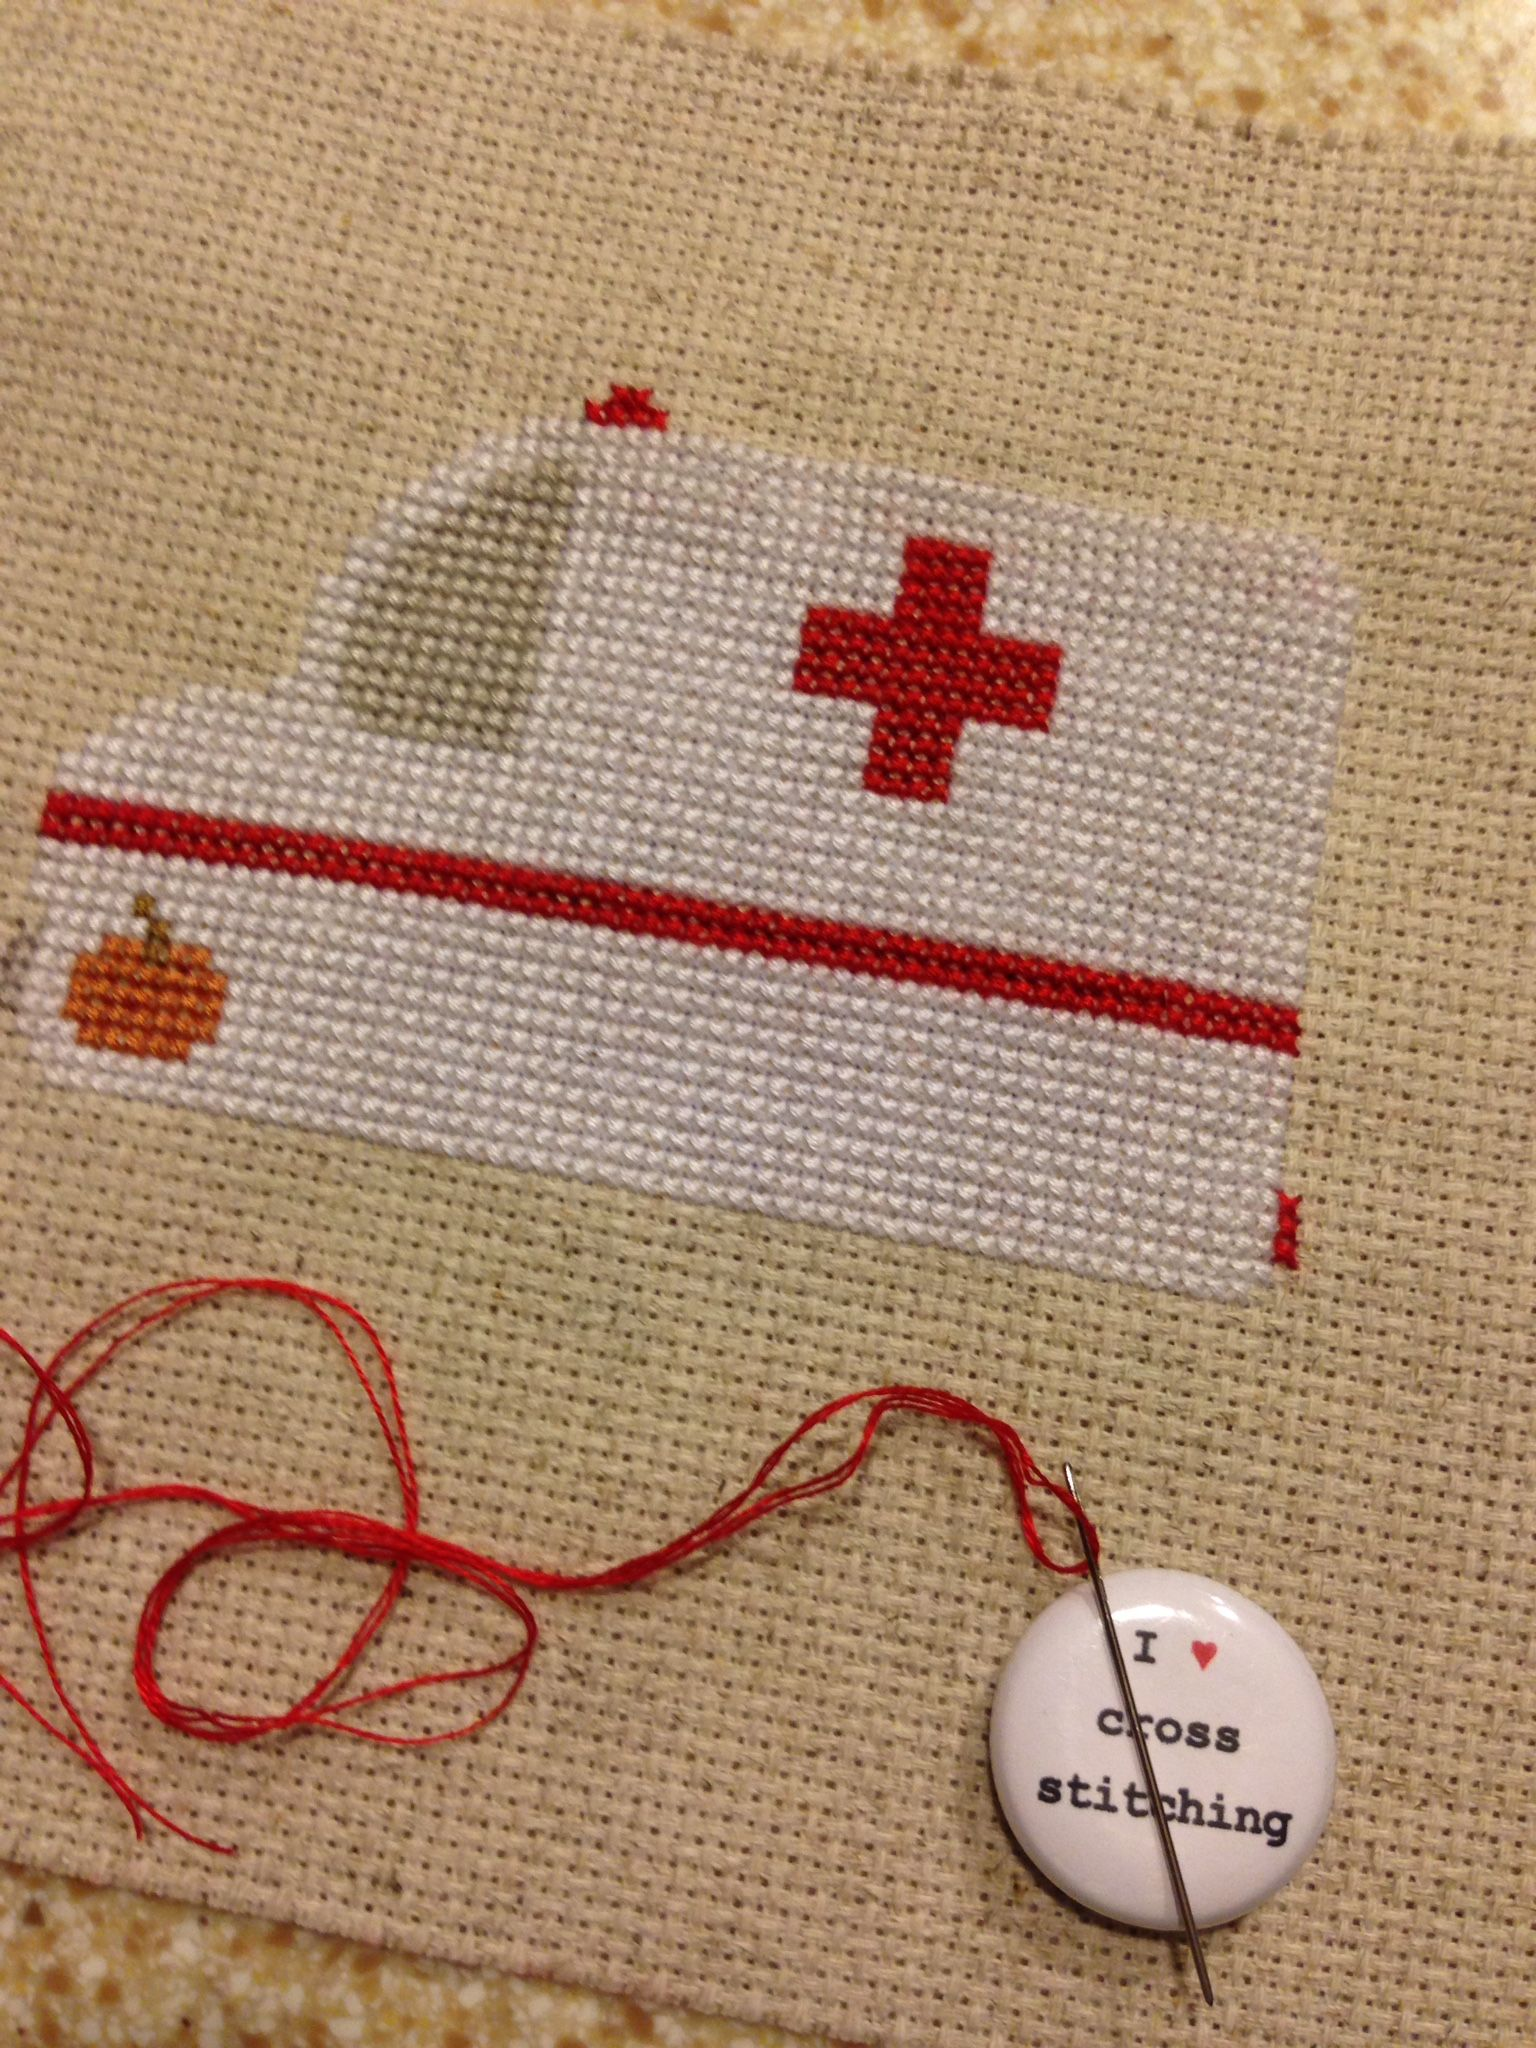 This is a cross stitch in progress for the front of a first aid kit I'm making...